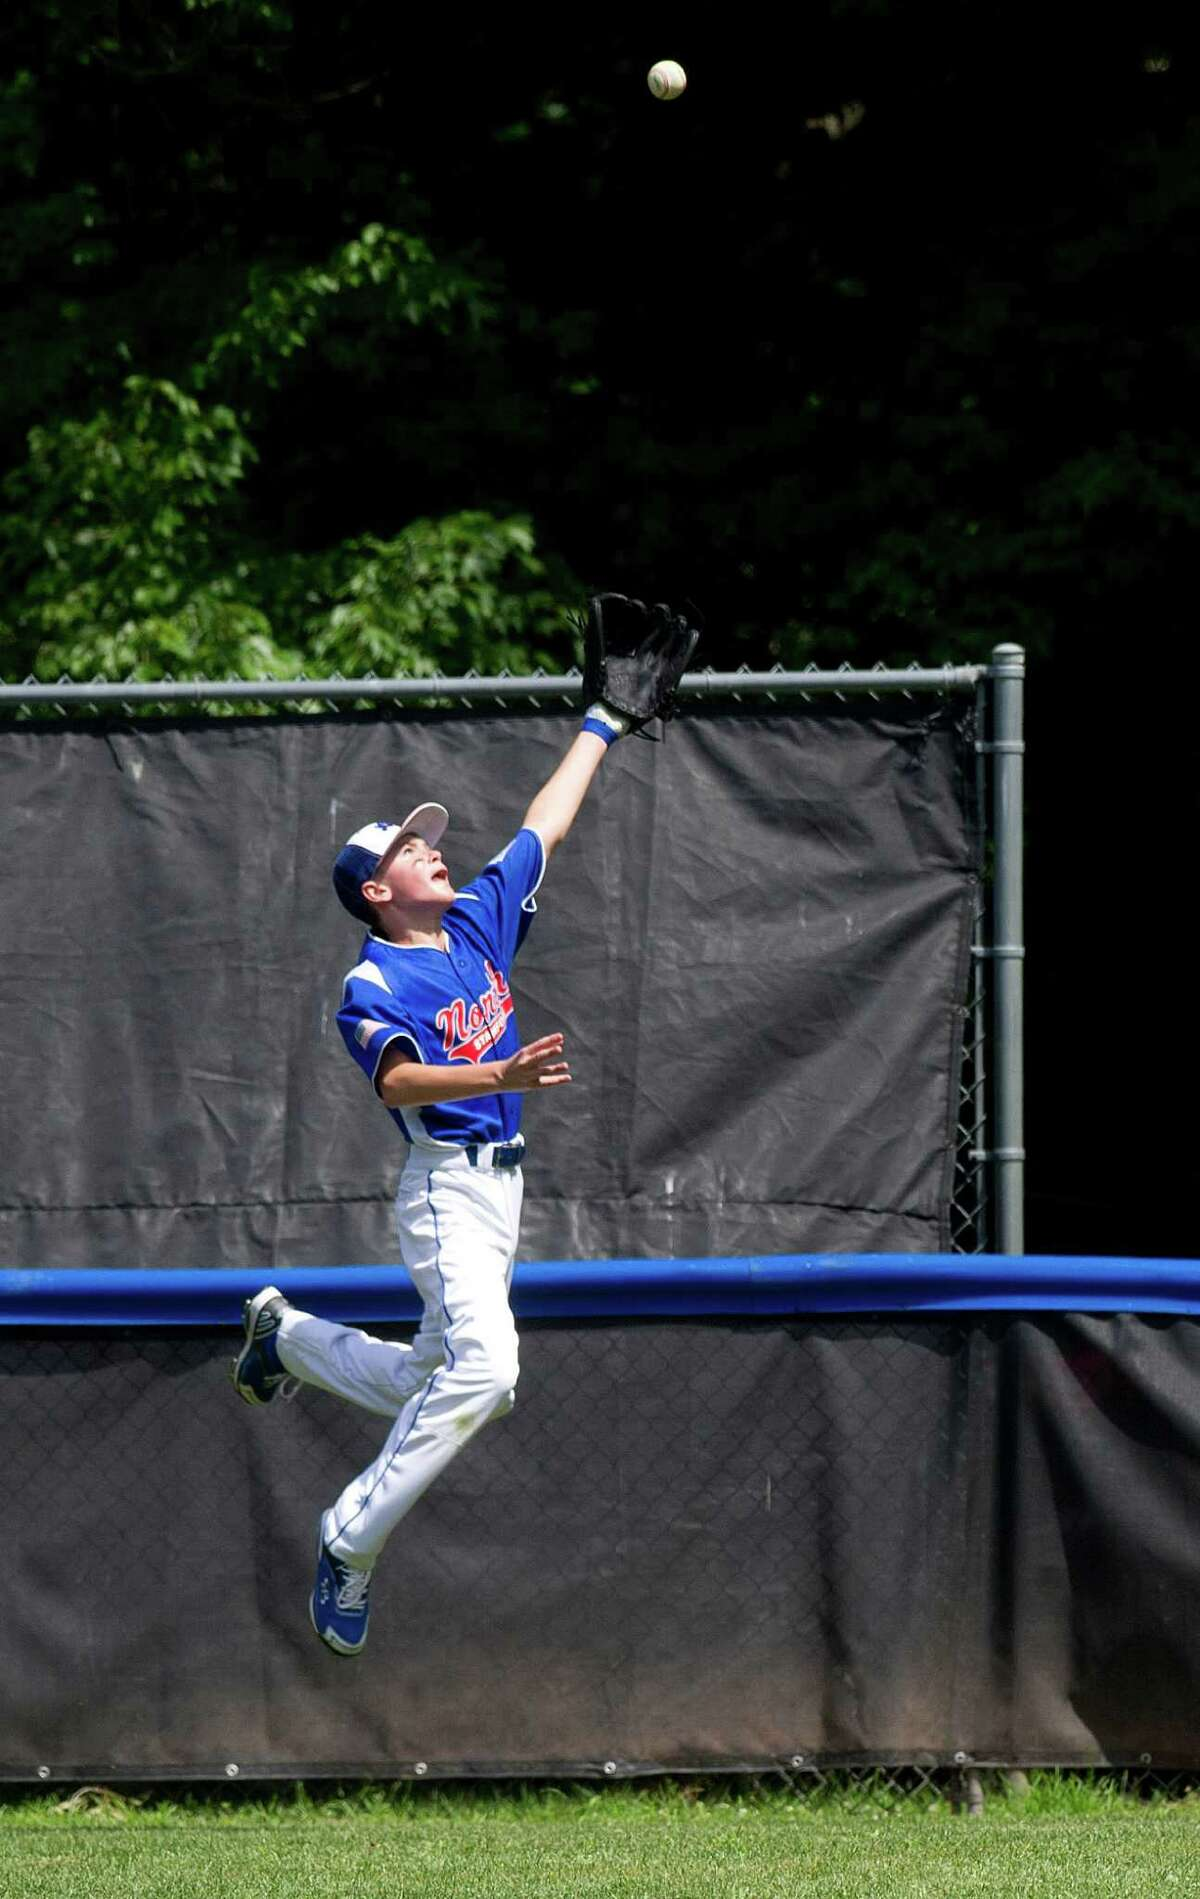 North Stamford's Bobby Zsmarslak jumps for the ball during Saturday's Little League quarterfinal game at Chestnut Hill Park in Stamford, Conn., on July 6, 2013.